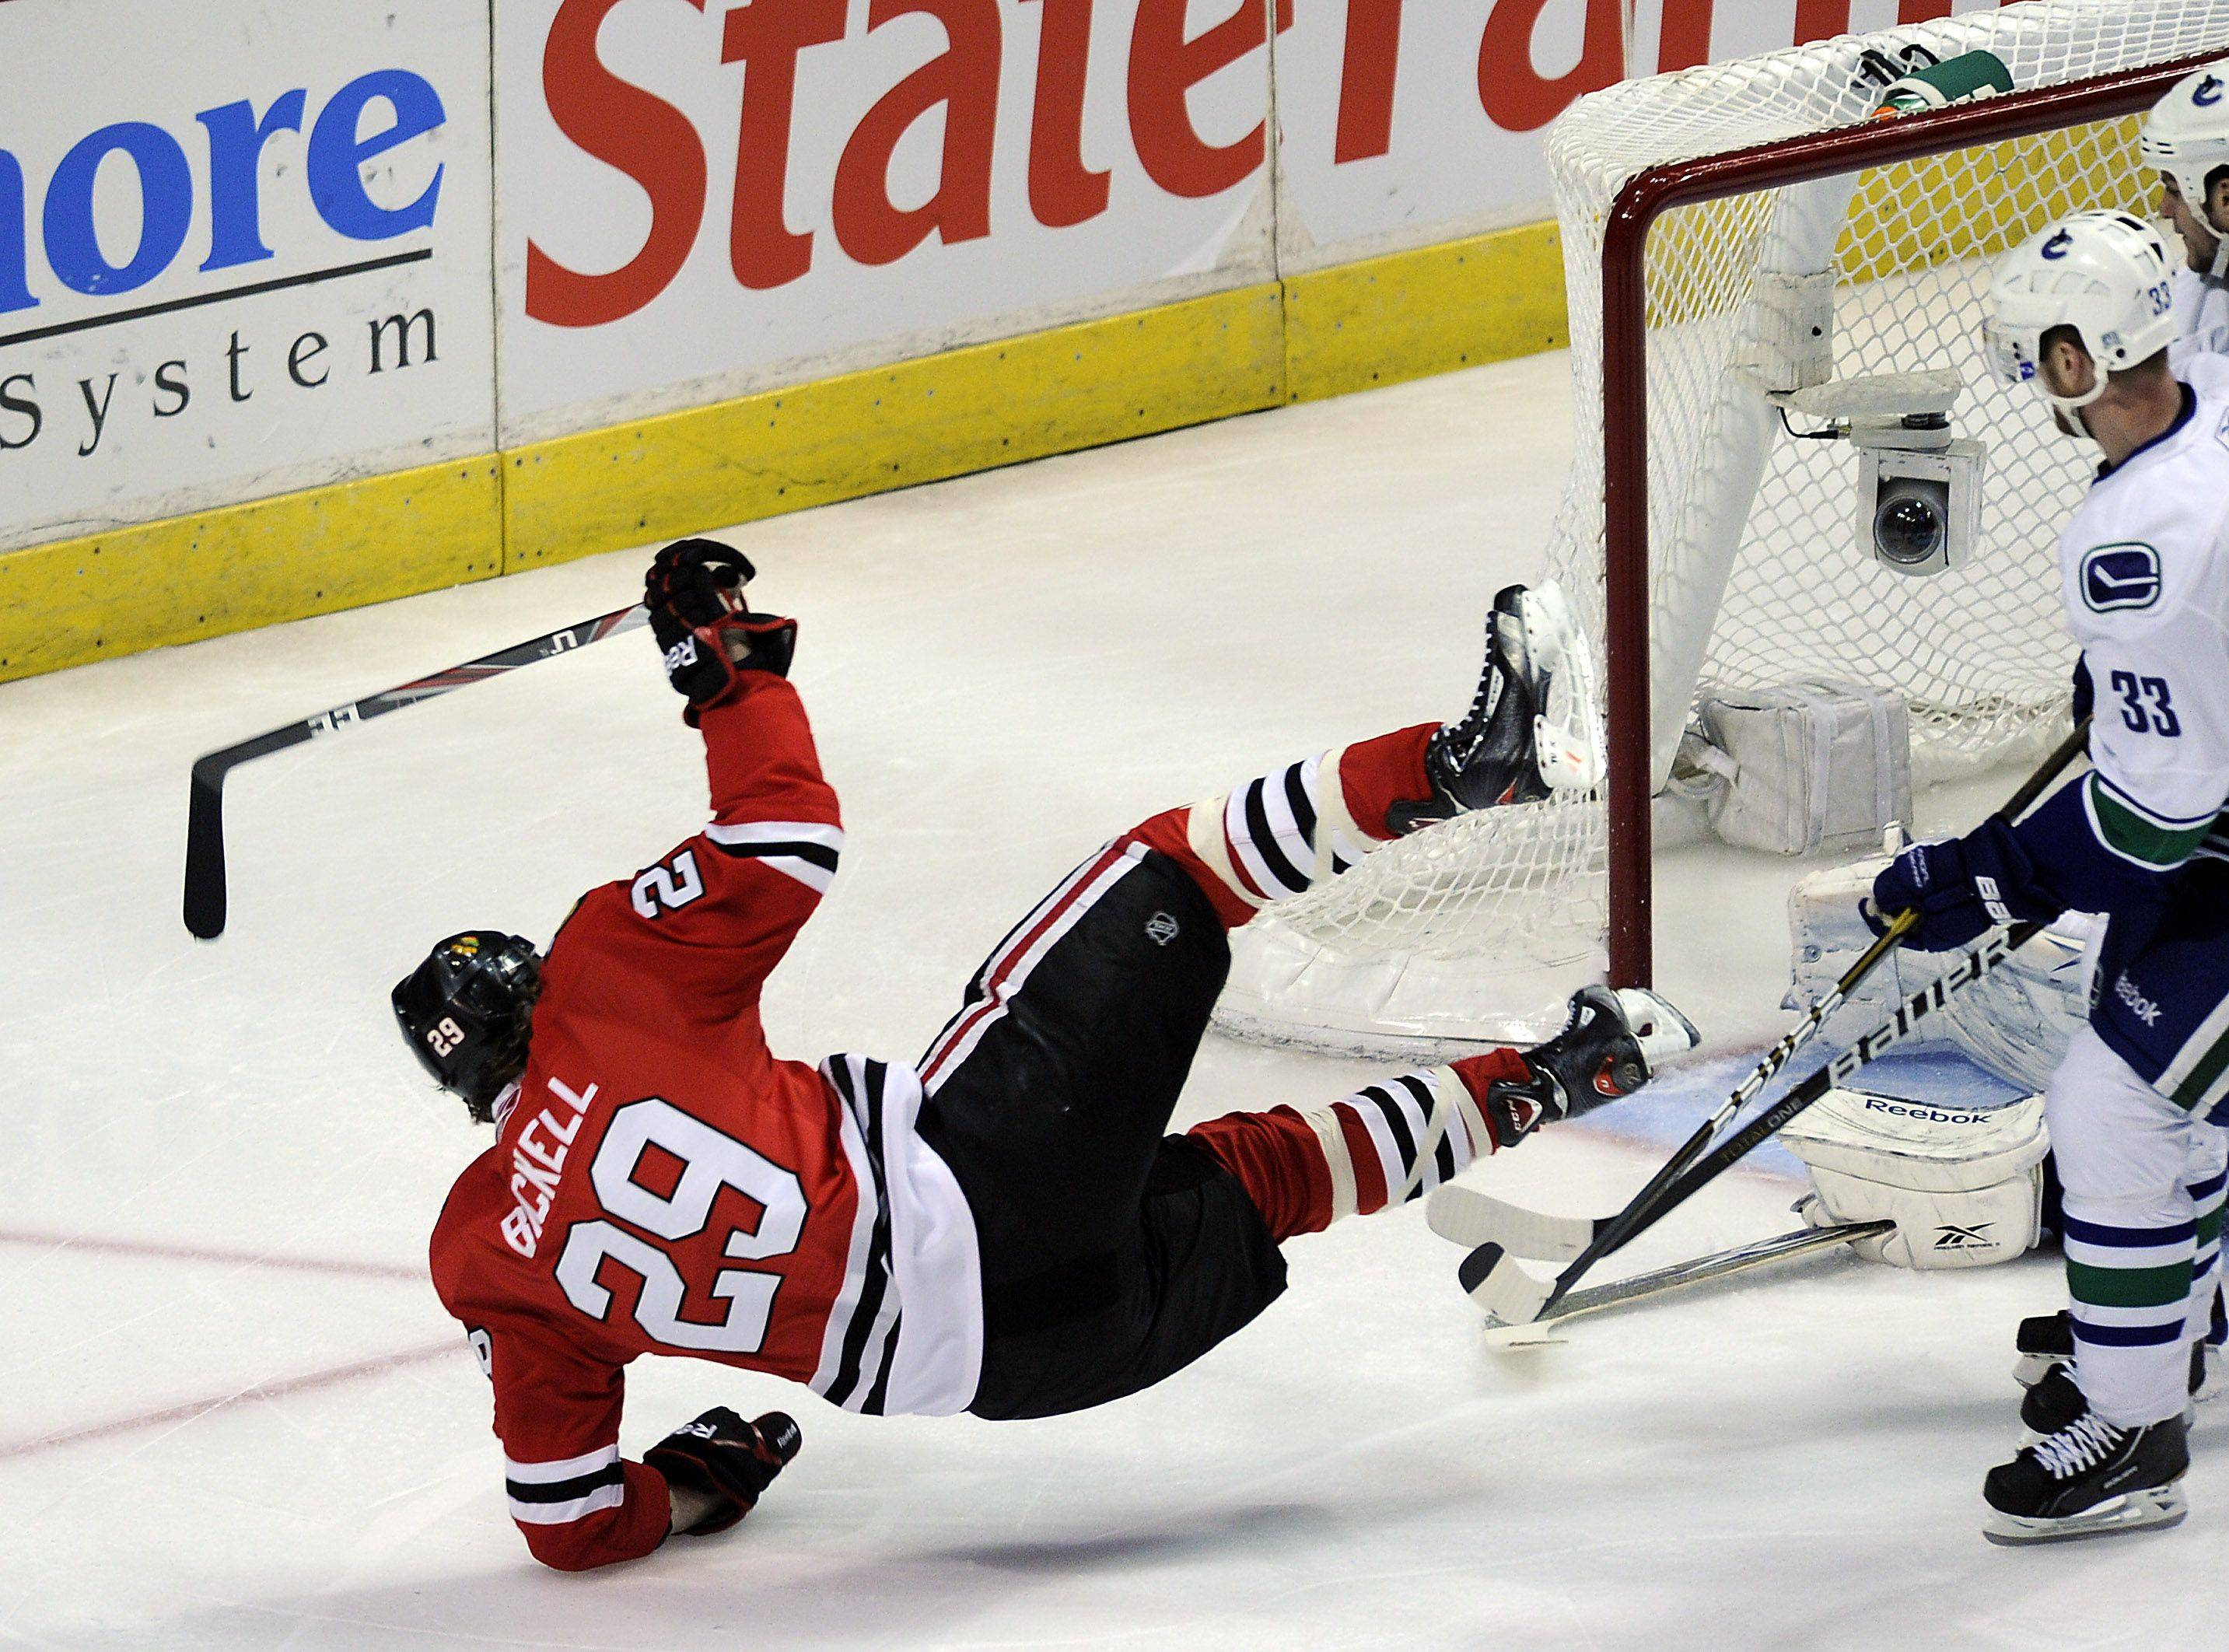 Bryan Bickell goes airborne after scoring in the first period.